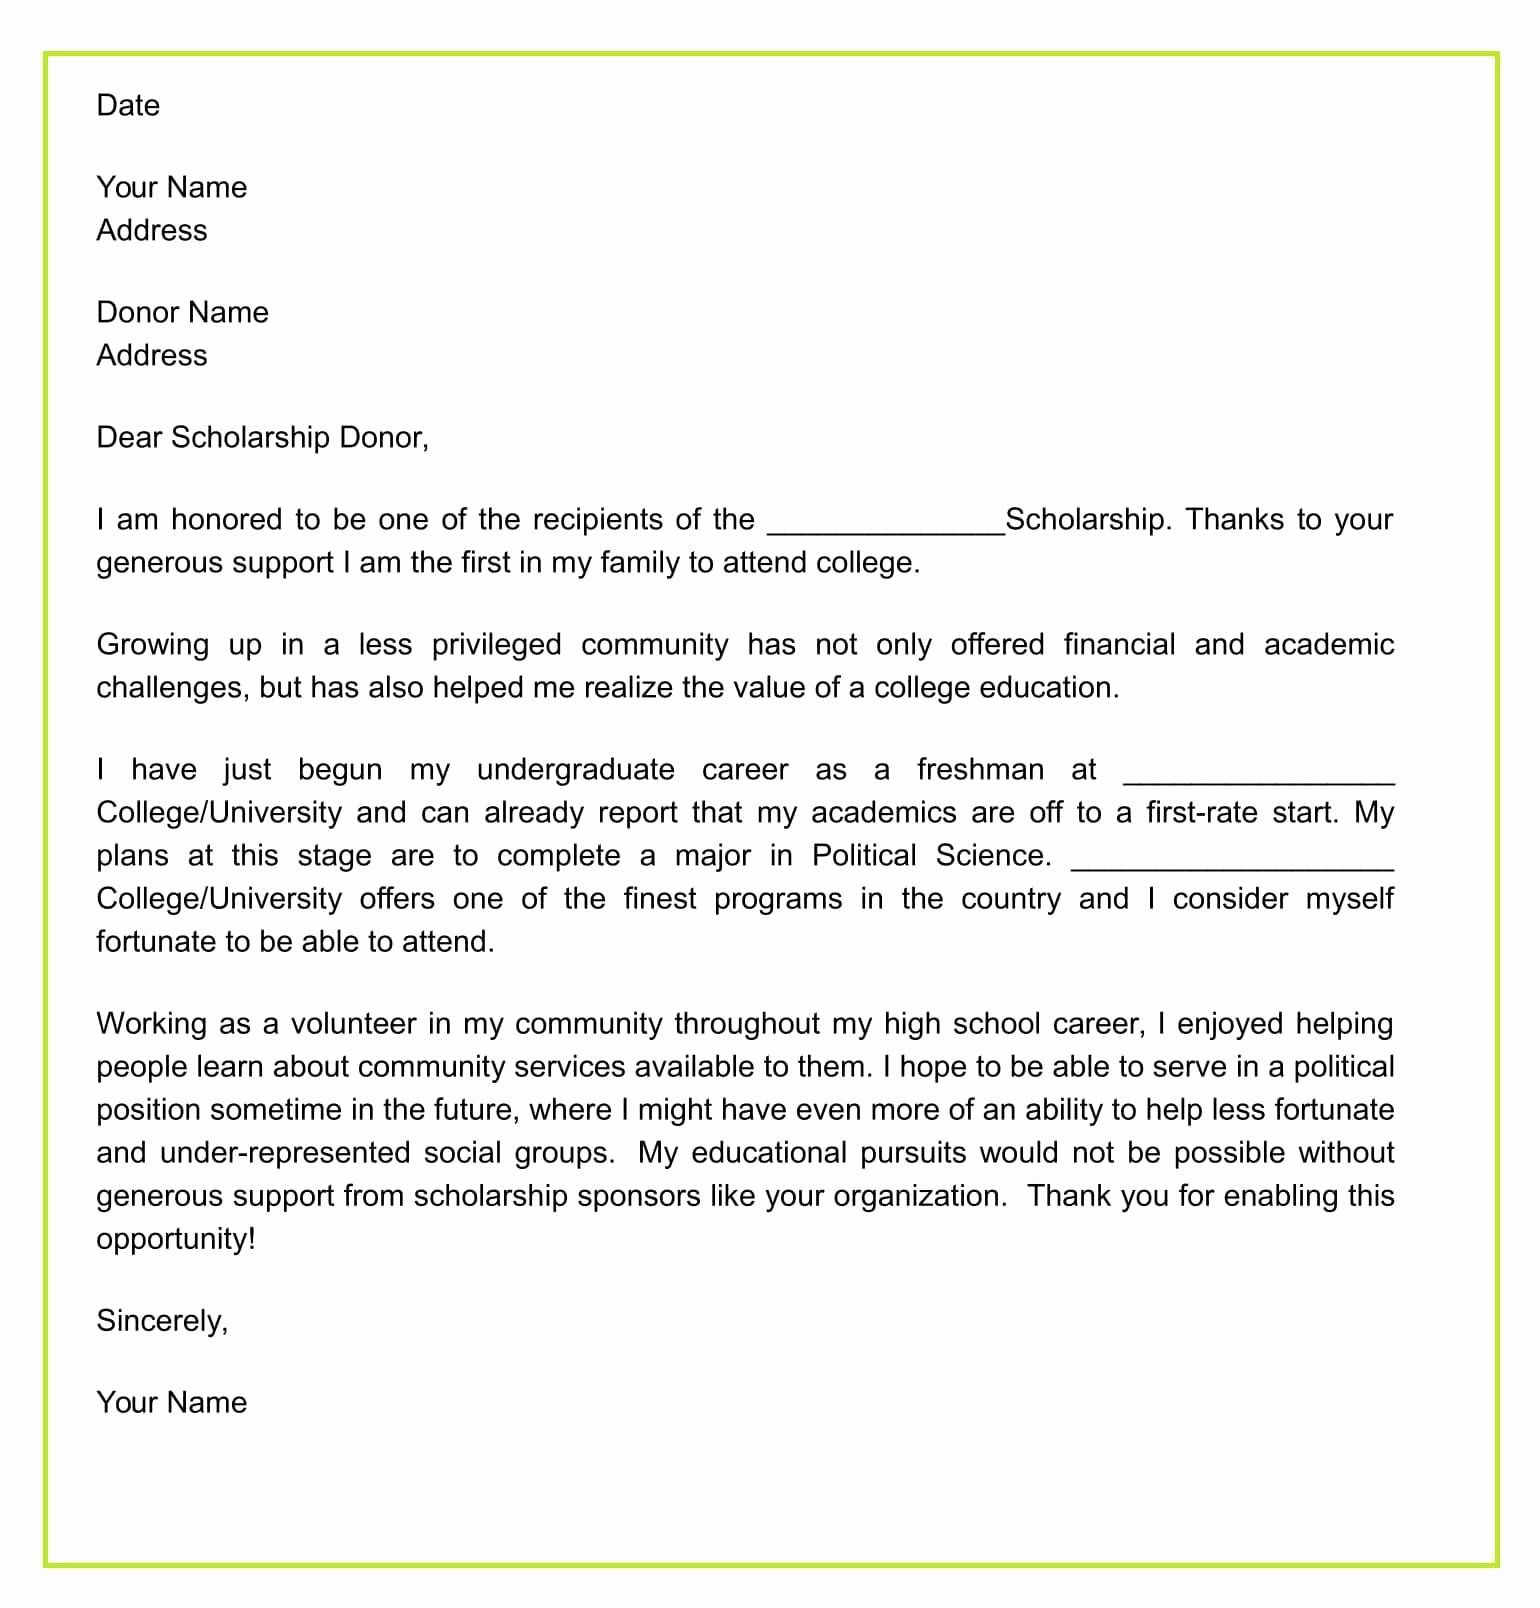 Scholarship Thank You Letter Examples Best Of How To Write Thank You Letter Fo Thank You Letter Examples Scholarship Thank You Letter Thank You Letter Template